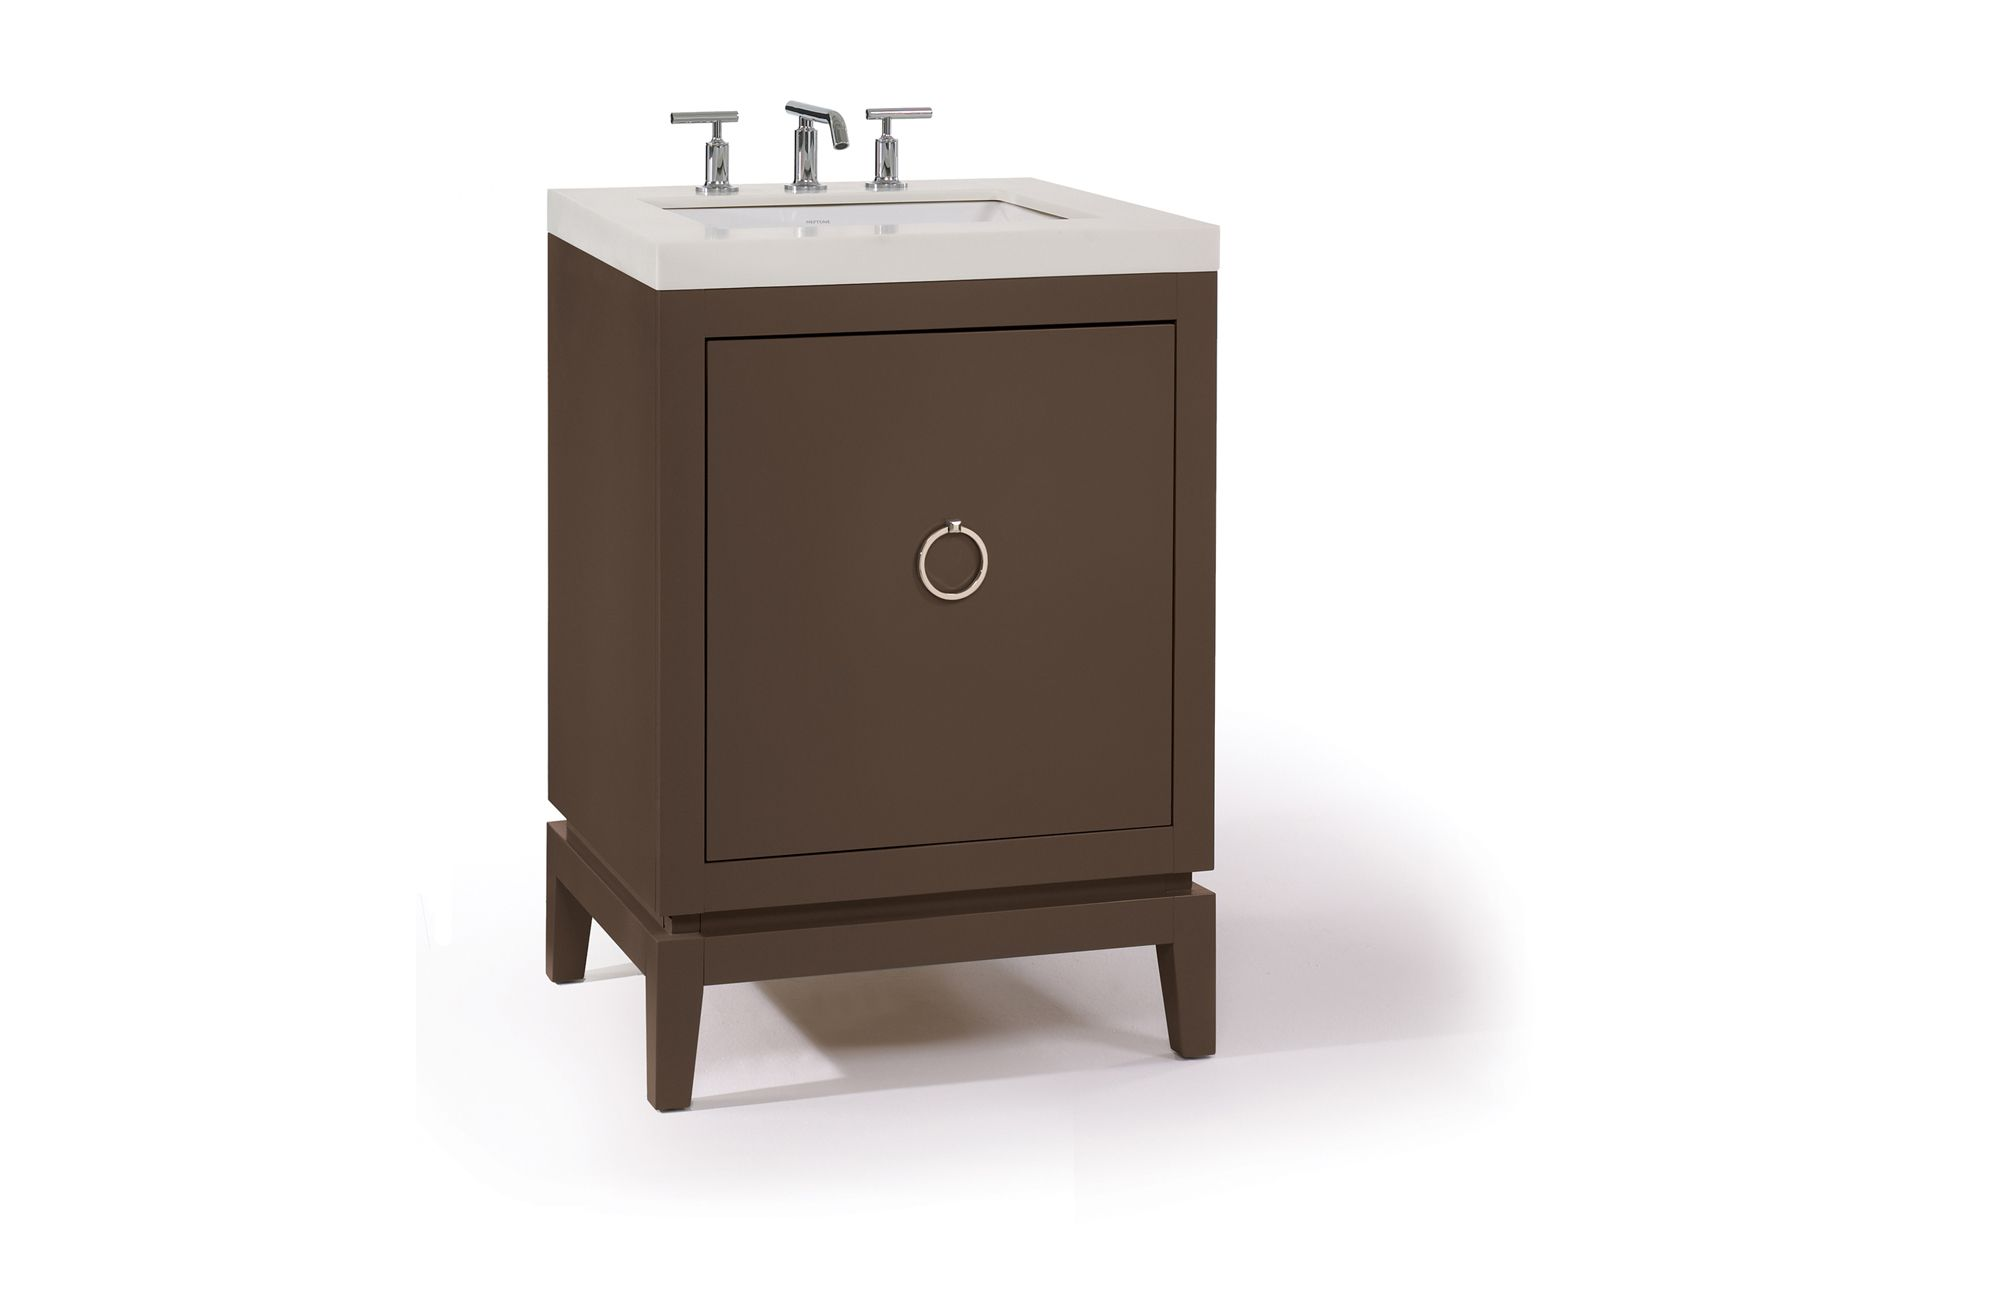 I Like This Vanity In White From Waterfall Bathroom Furniture The Diplomat